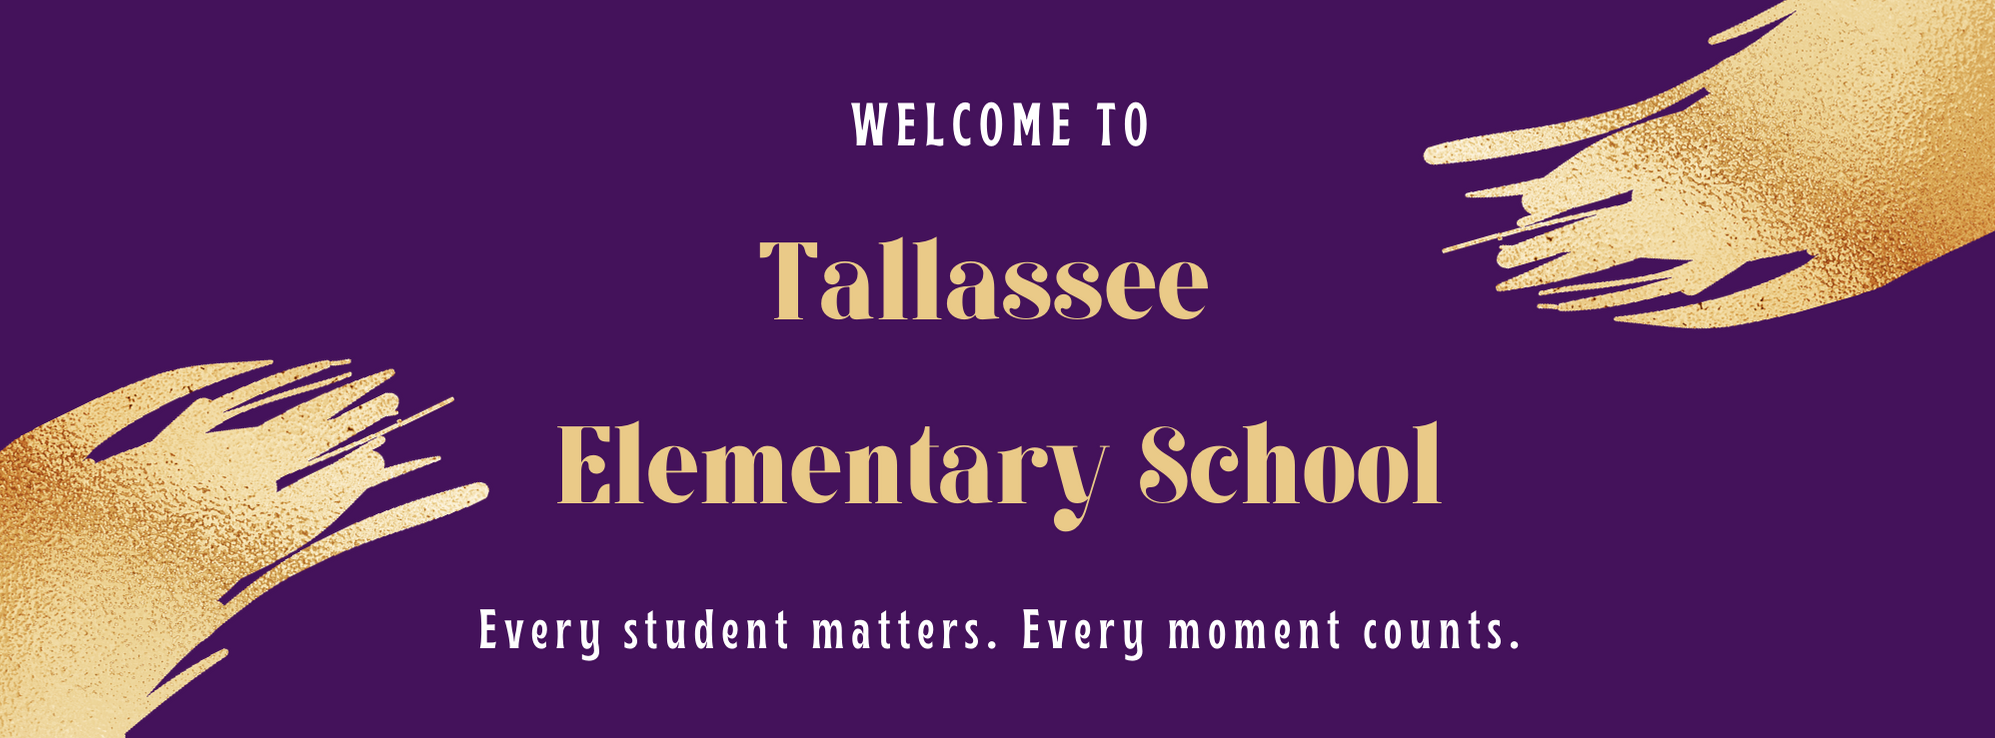 Welcome to Tallassee Elementary School! Every student matters. Every moment counts.